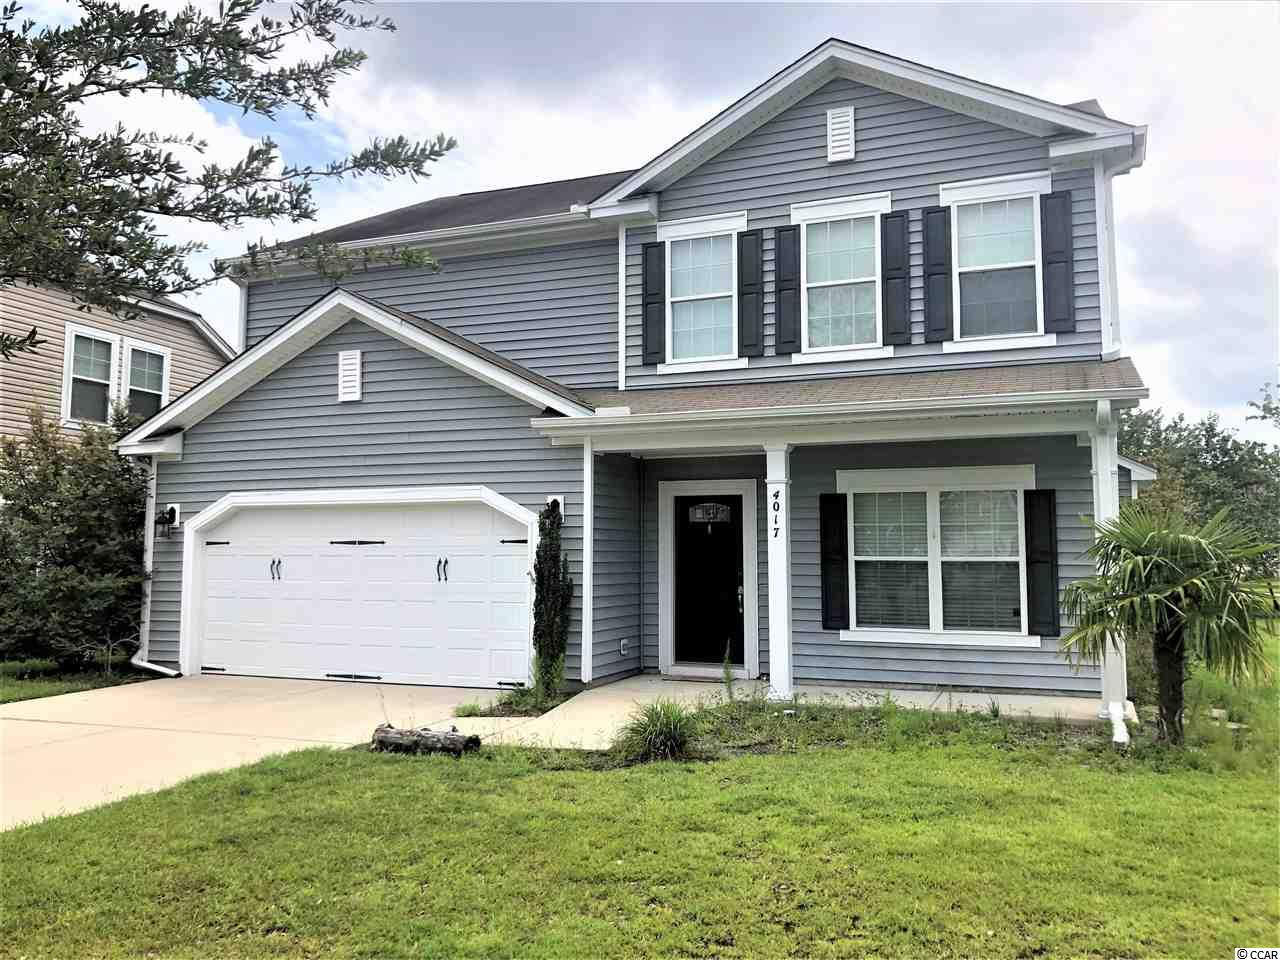 Spectacular 4 bedroom, 2.5 bathroom, located in the Clearpond subdivsion. This home has so many features, hardwood flooring, tile flooring, ceiling fans, fireplace, Carolina room, kitchen island, breakfast bar, granite, pantry, 2 car garage, and so much more! Pets considered with non refundable pet fee. Rent includes all amenities.